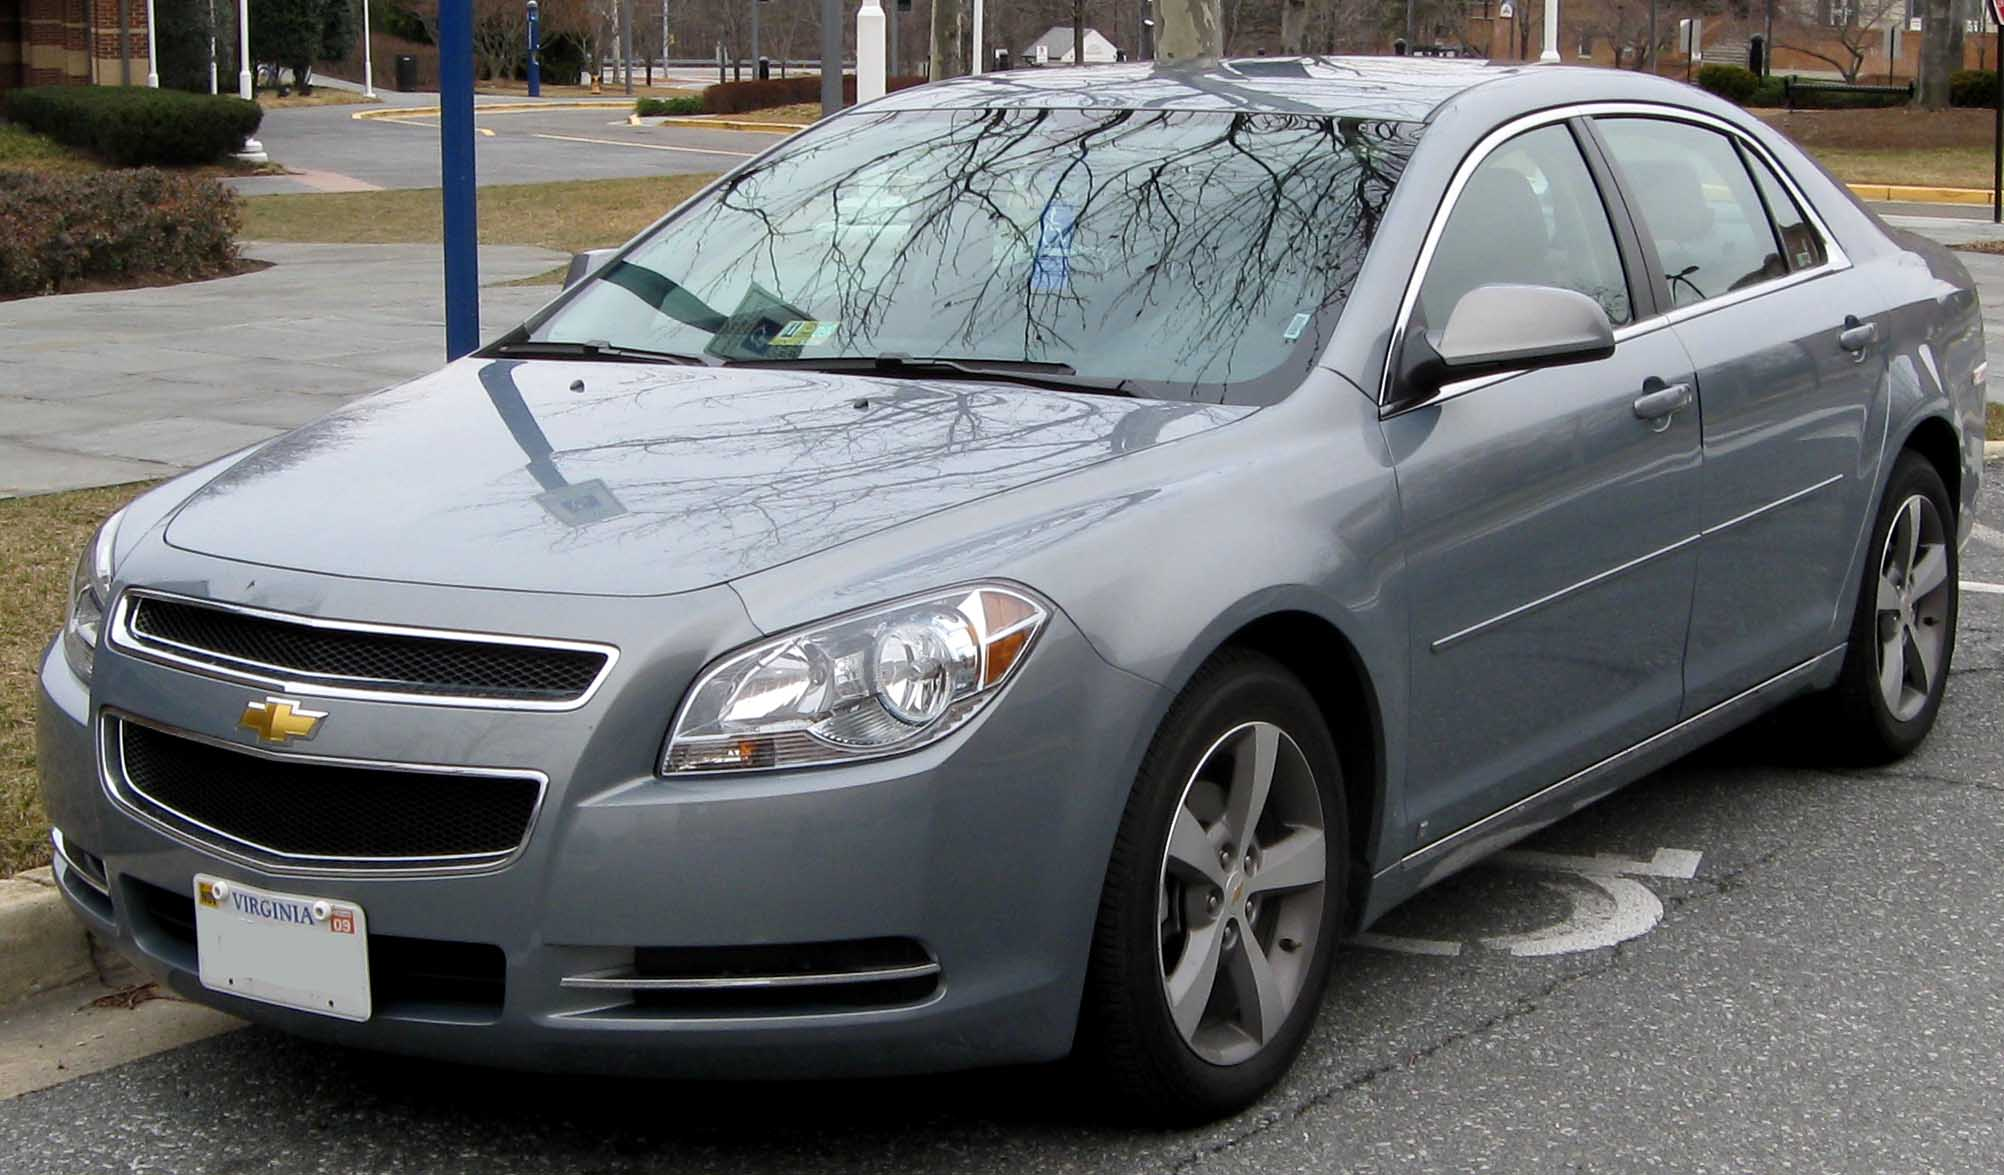 File2008 Chevrolet Malibu LT jpg  Wikimedia Commons